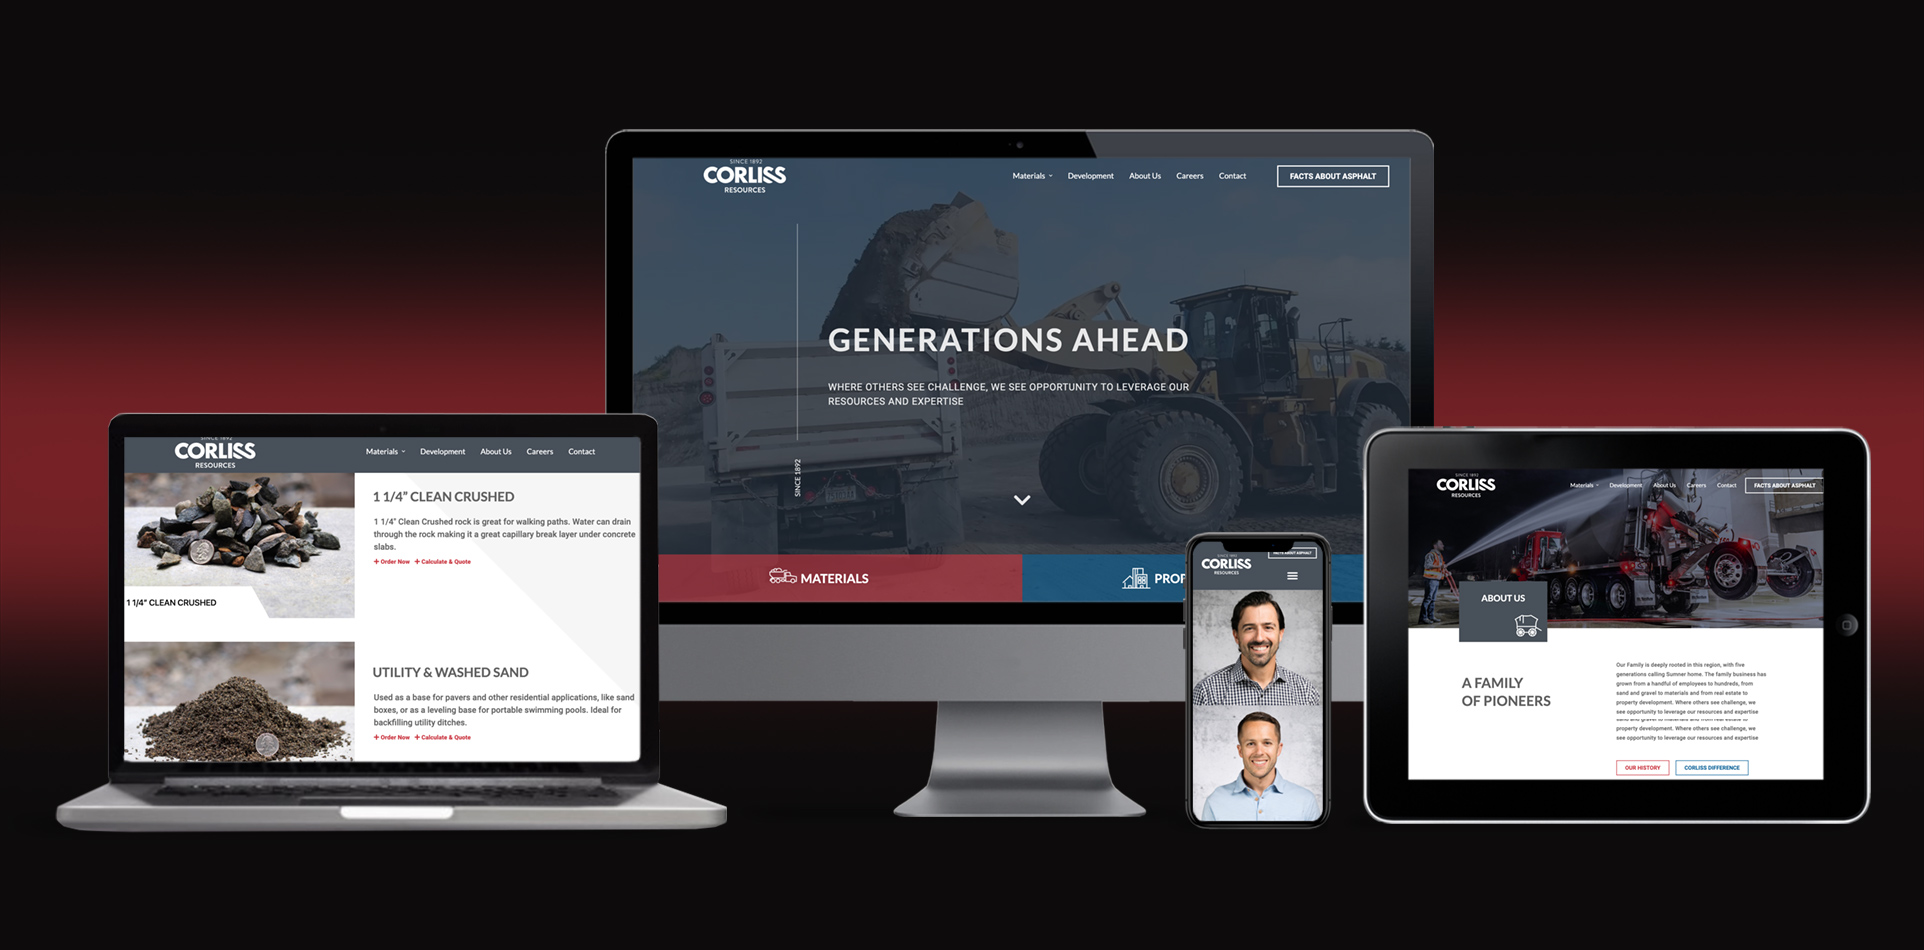 Corliss Co. supplier of concrete, building materials and innovative development projects website design and development